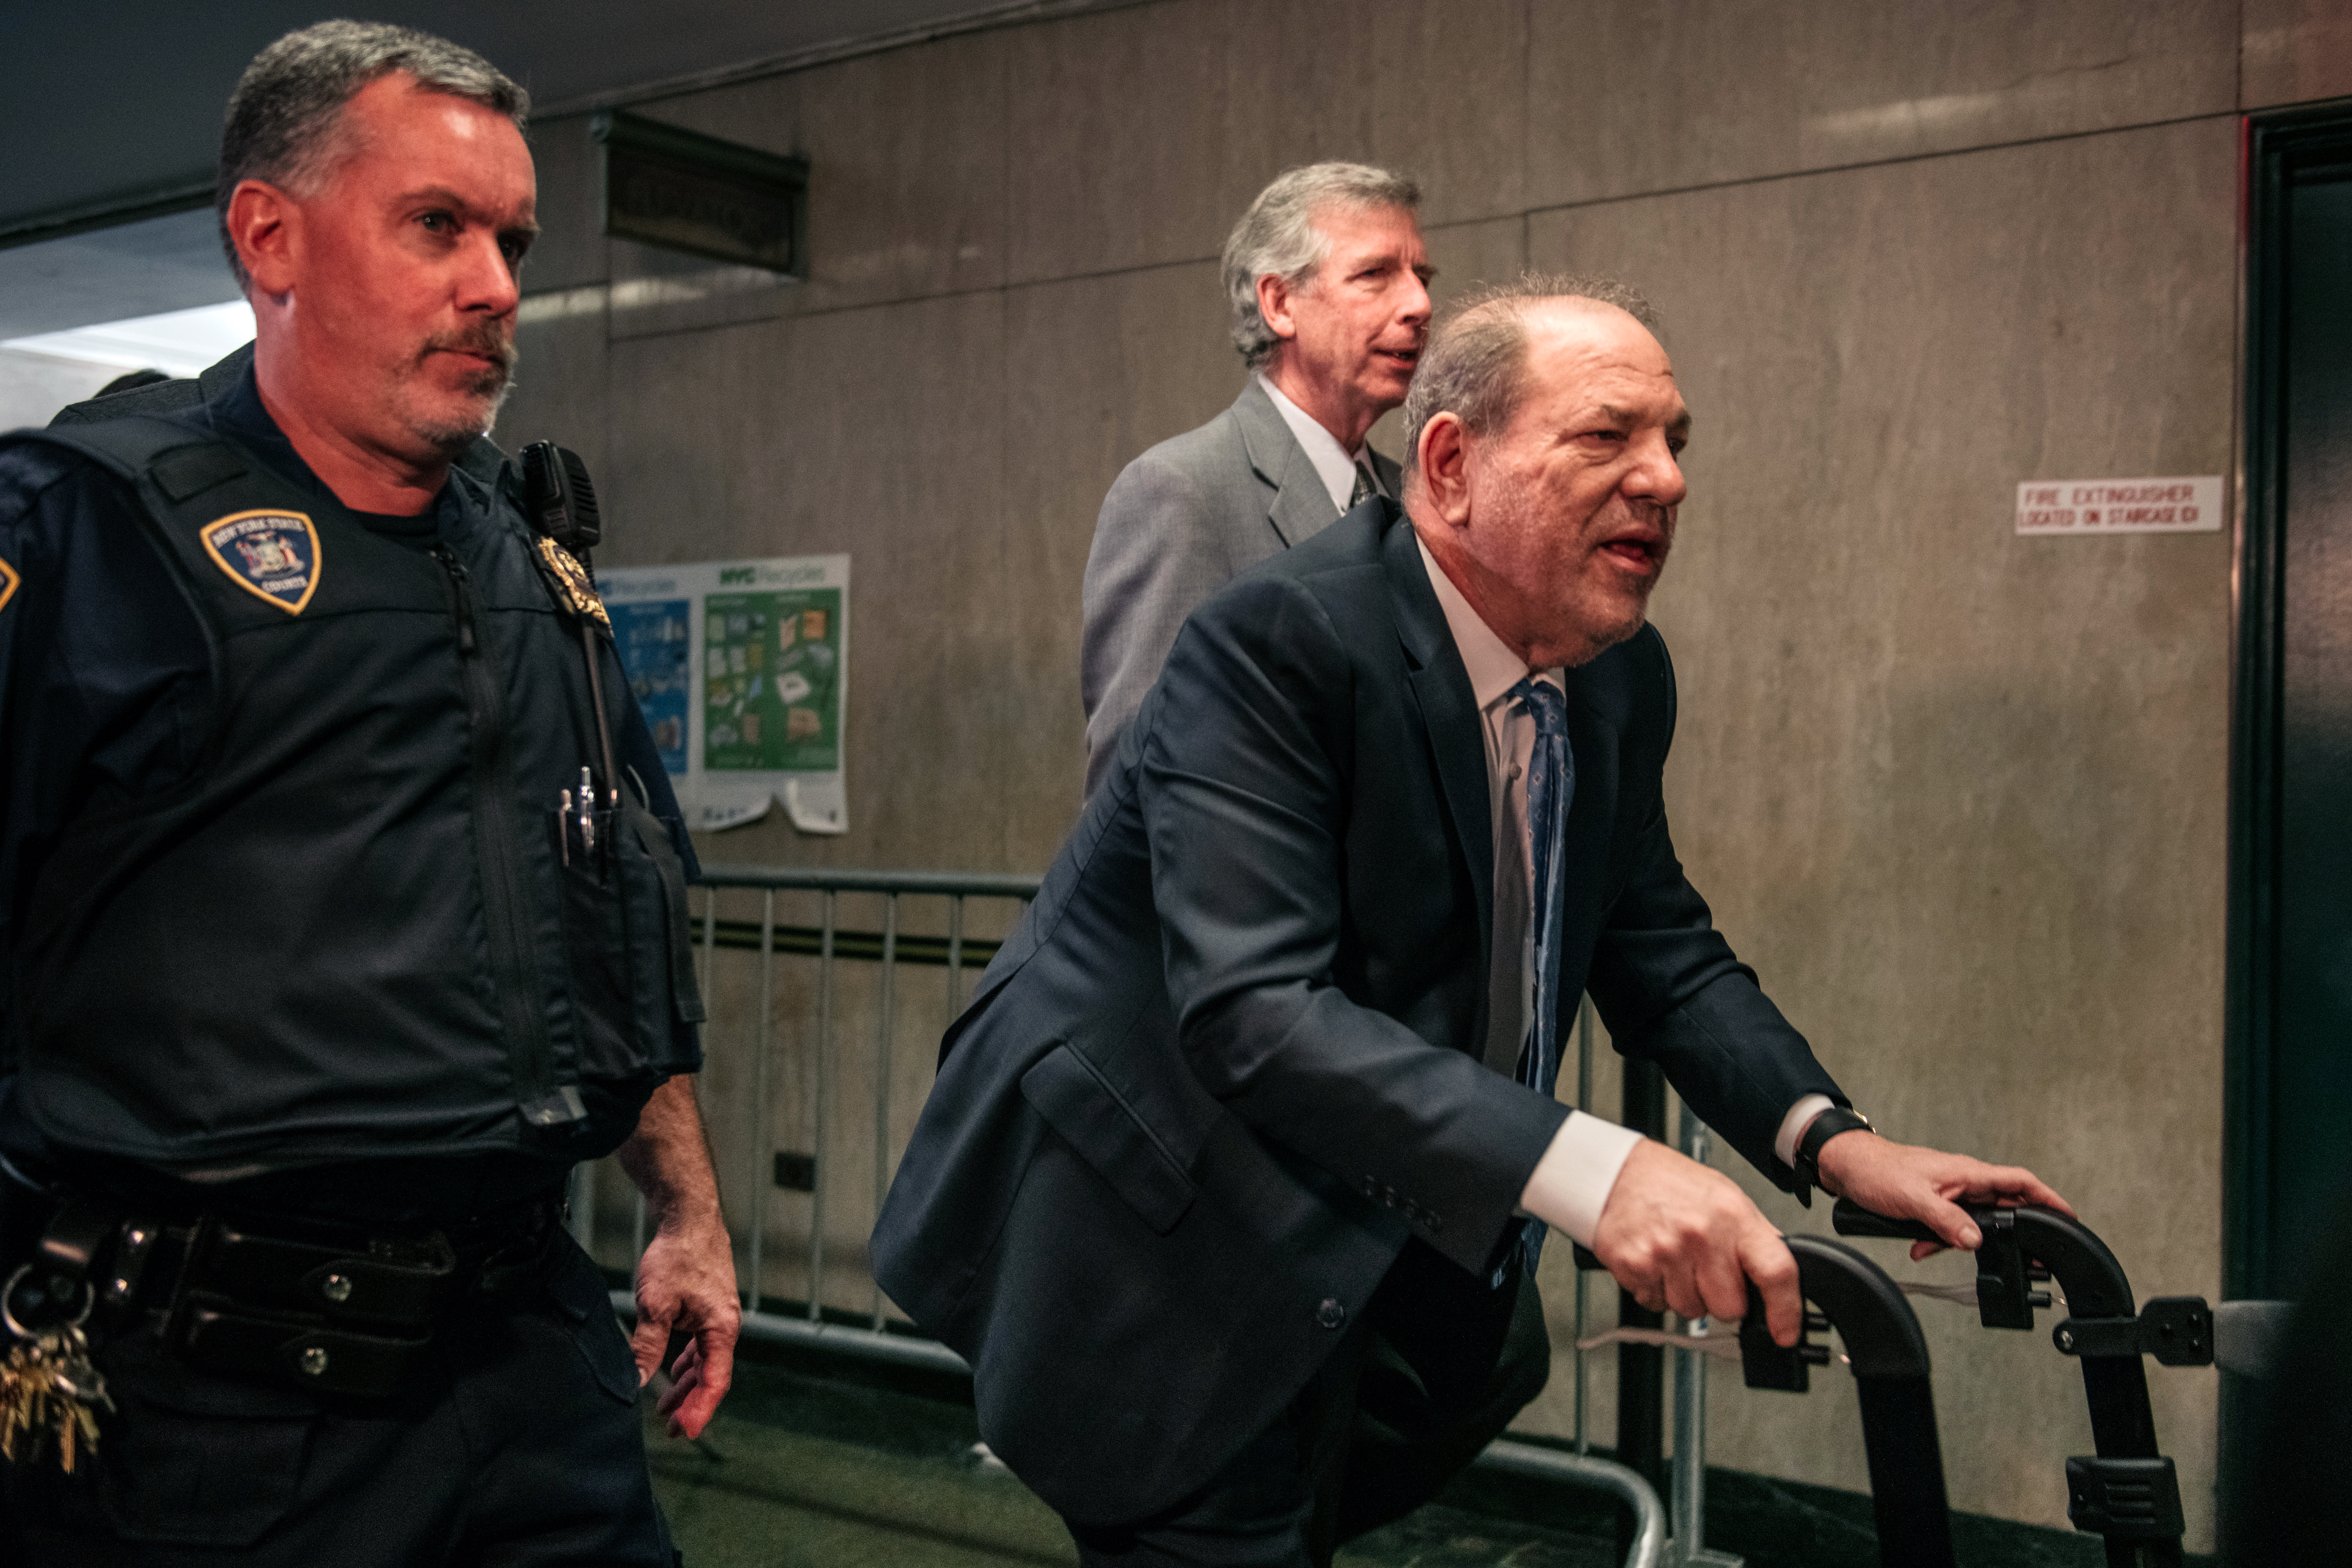 Movie producer Harvey Weinstein (R) enters New York City Criminal Court on February 24, 2020 in New York City. Jury deliberations in the high-profile trial are believed to be nearing a close, with a verdict on Weinstein's numerous rape and sexual misconduct charges expected in the coming days. (Photo by Scott Heins/Getty Images)